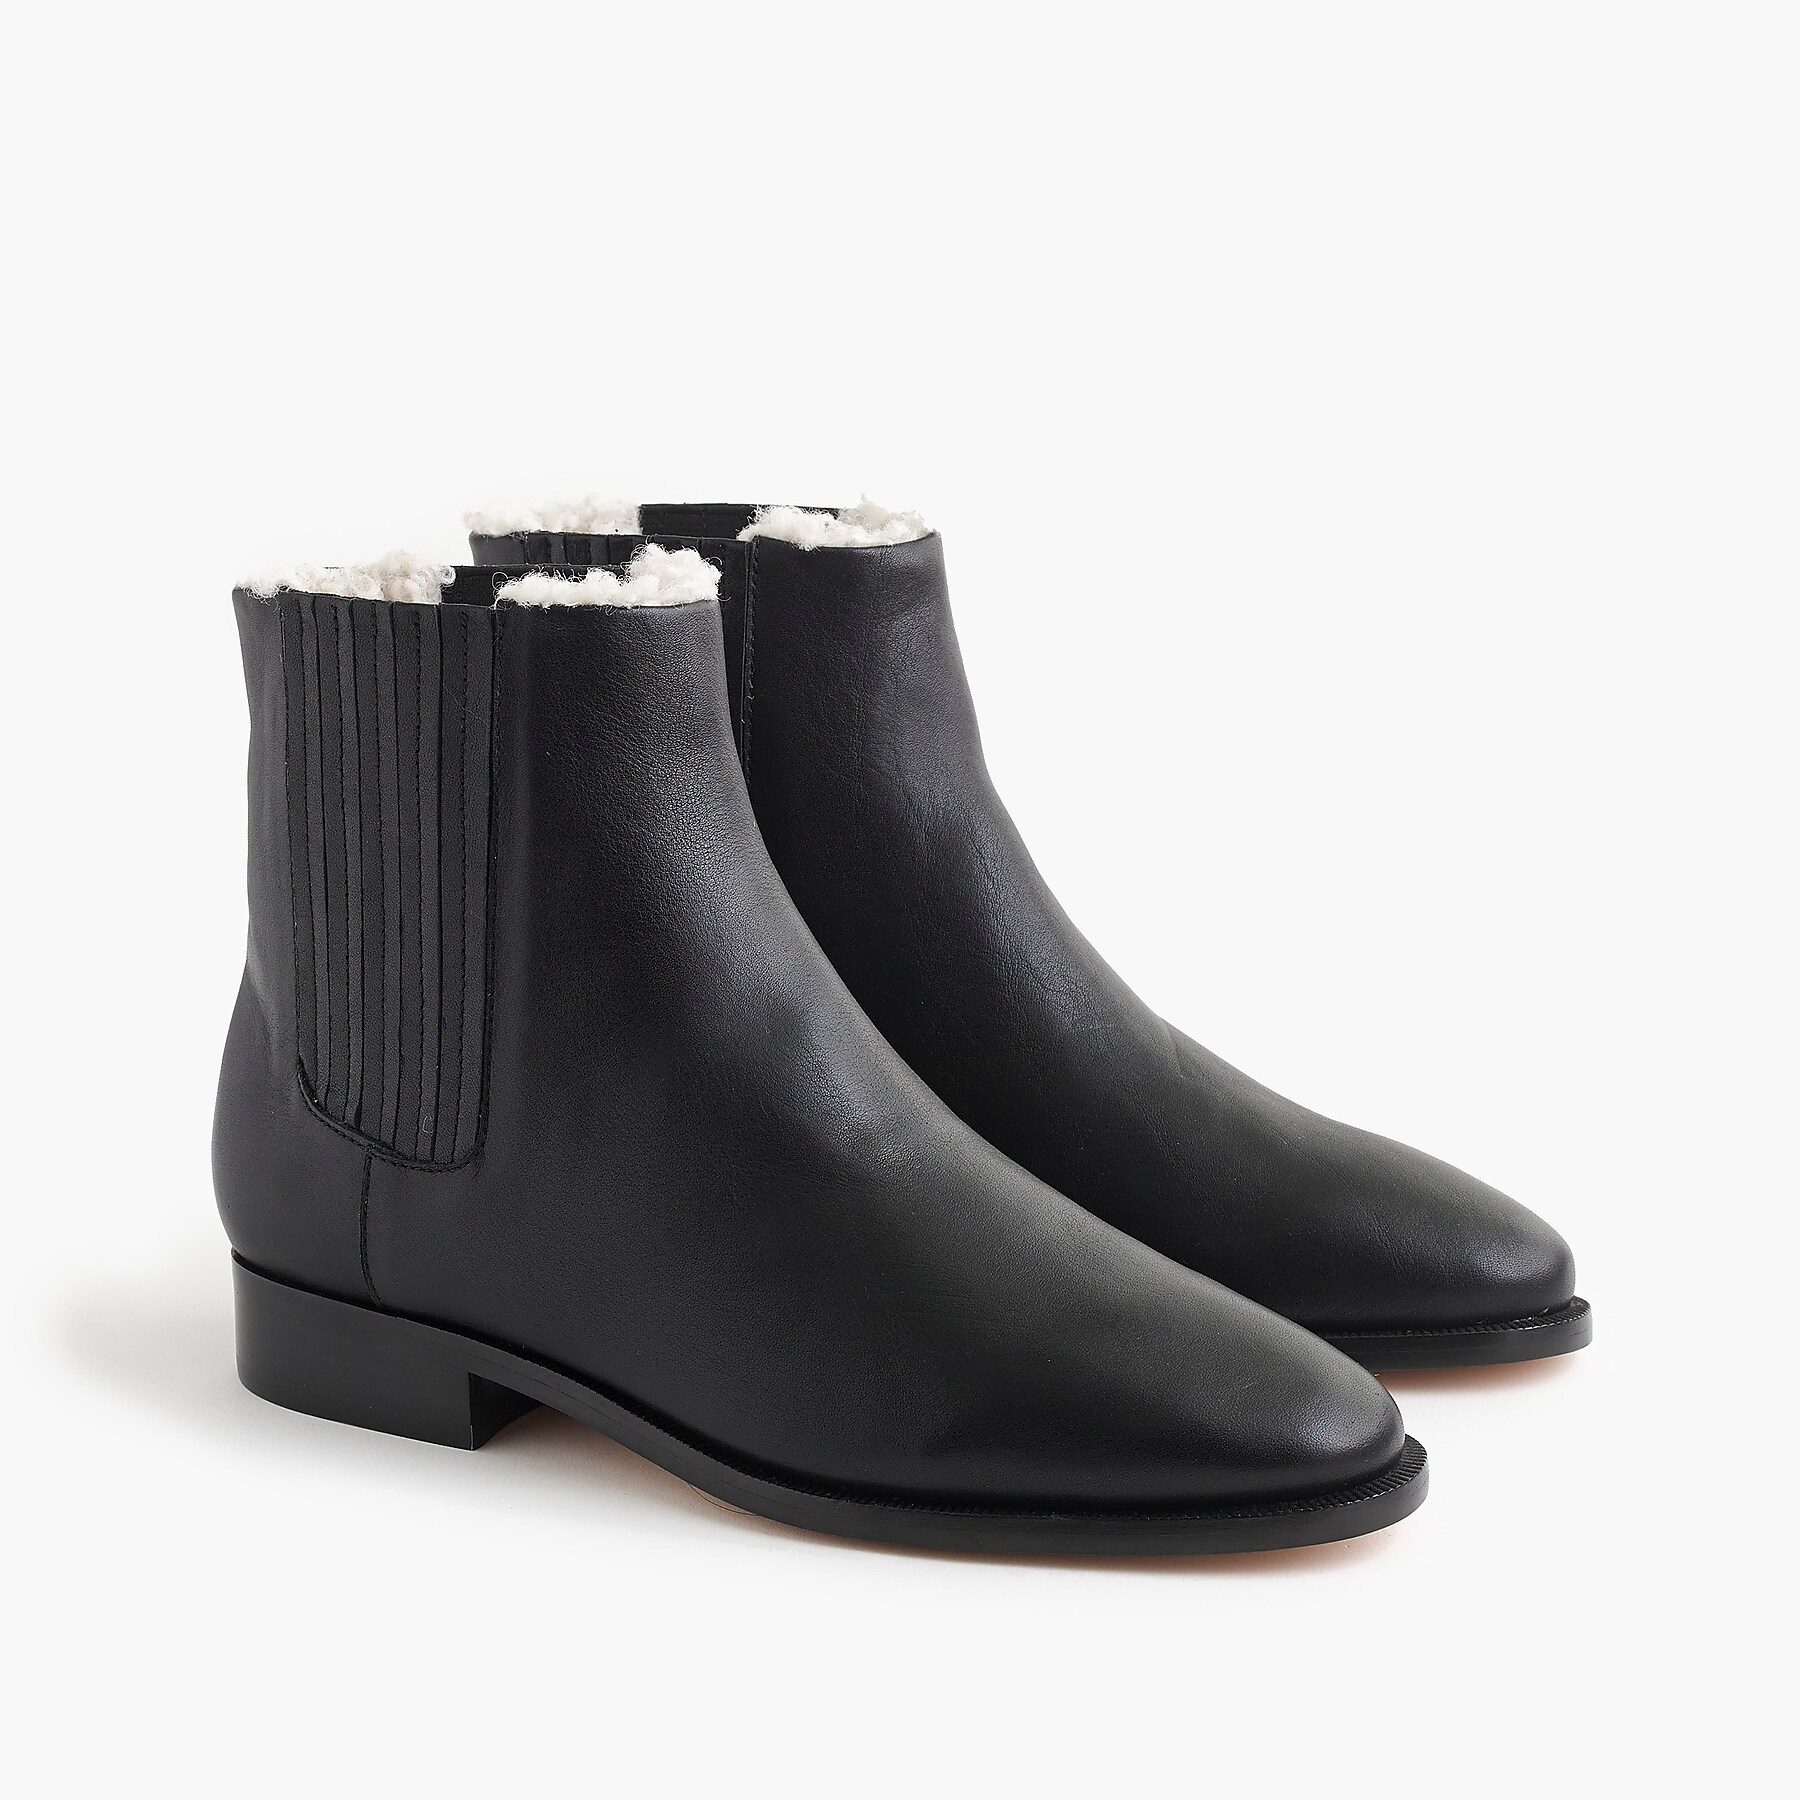 J.Crew black leather boots lined with sherpa